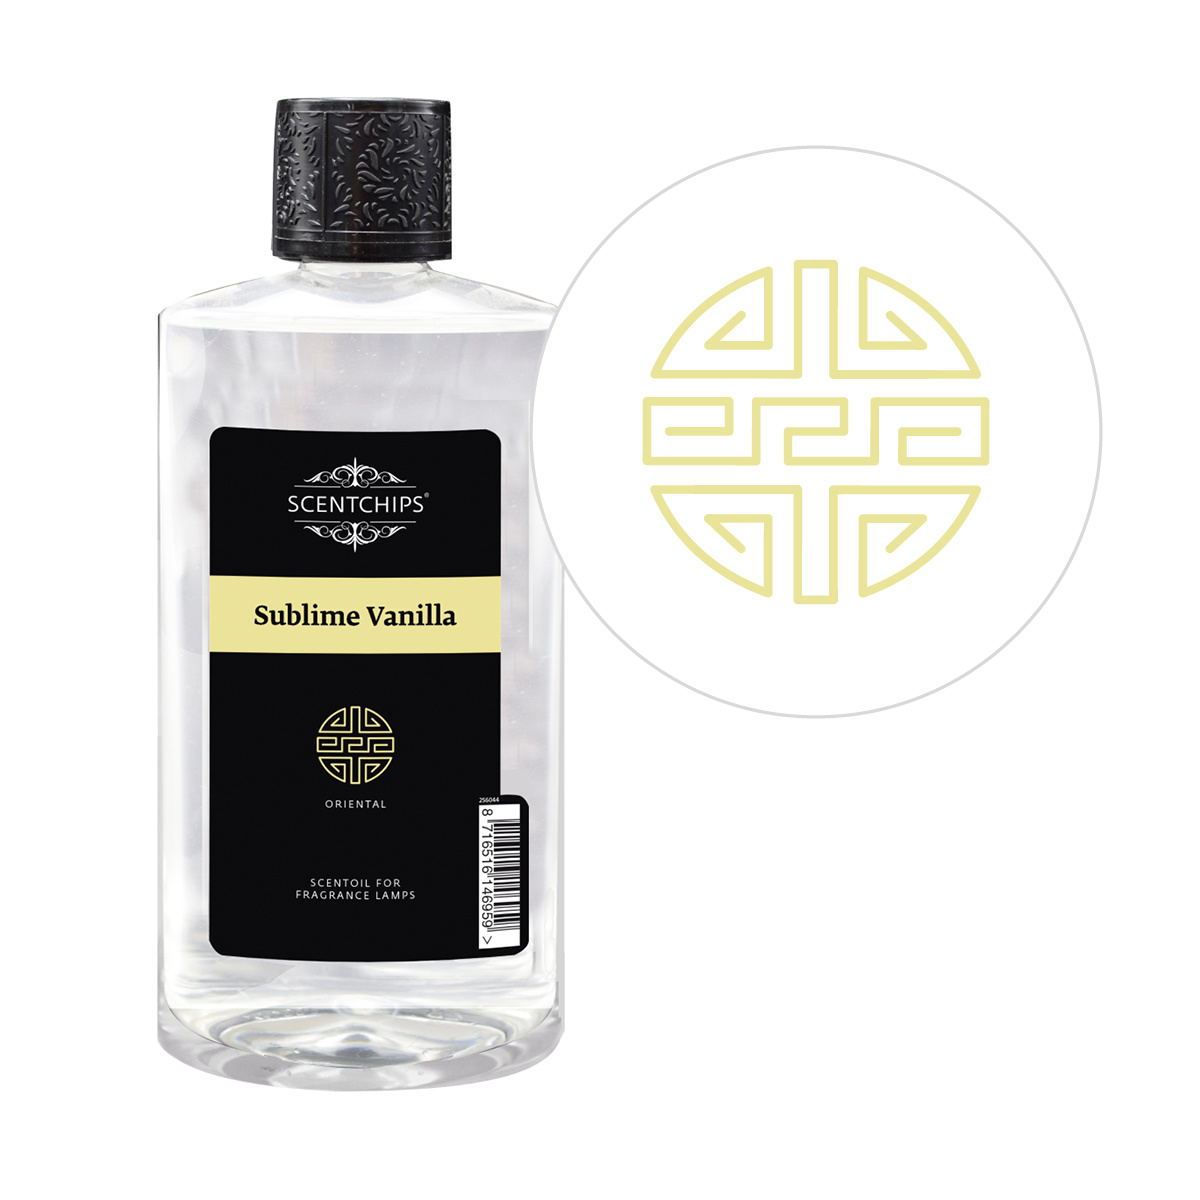 Sublime Vanilla fragrance oil ScentOil